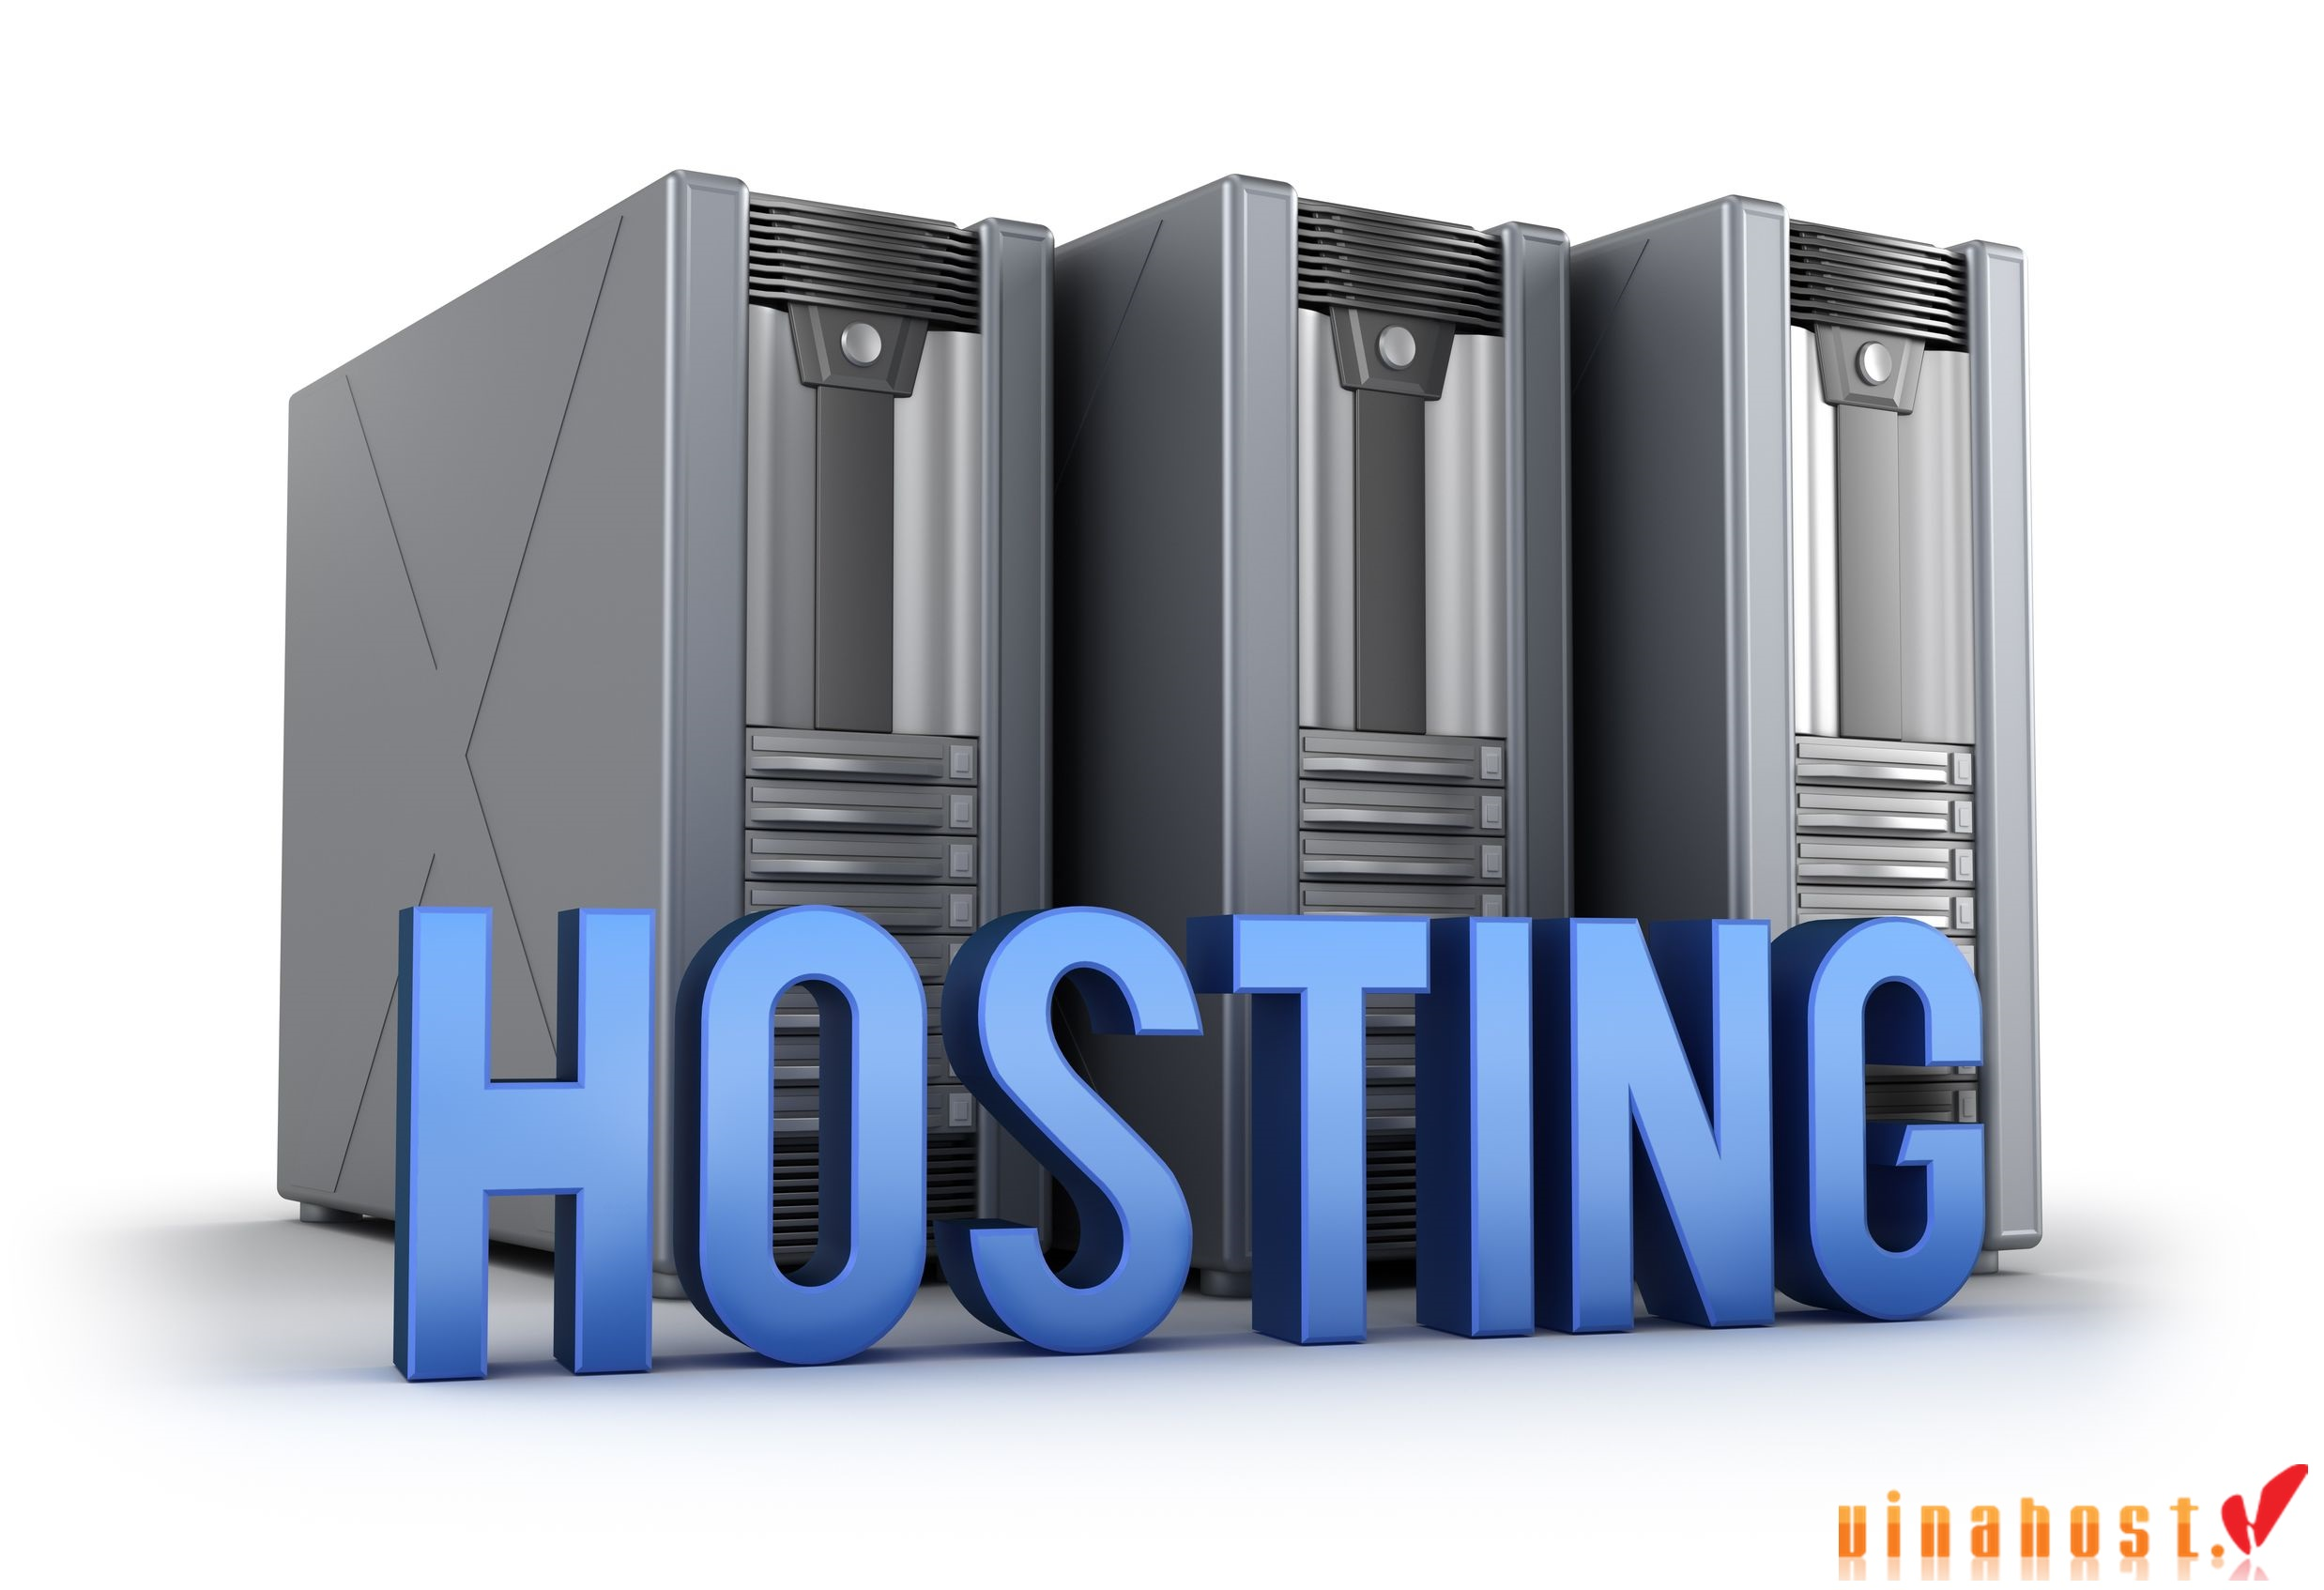 vinahost-best-ways-to-choose-quality-vietnam-hosting-company-3